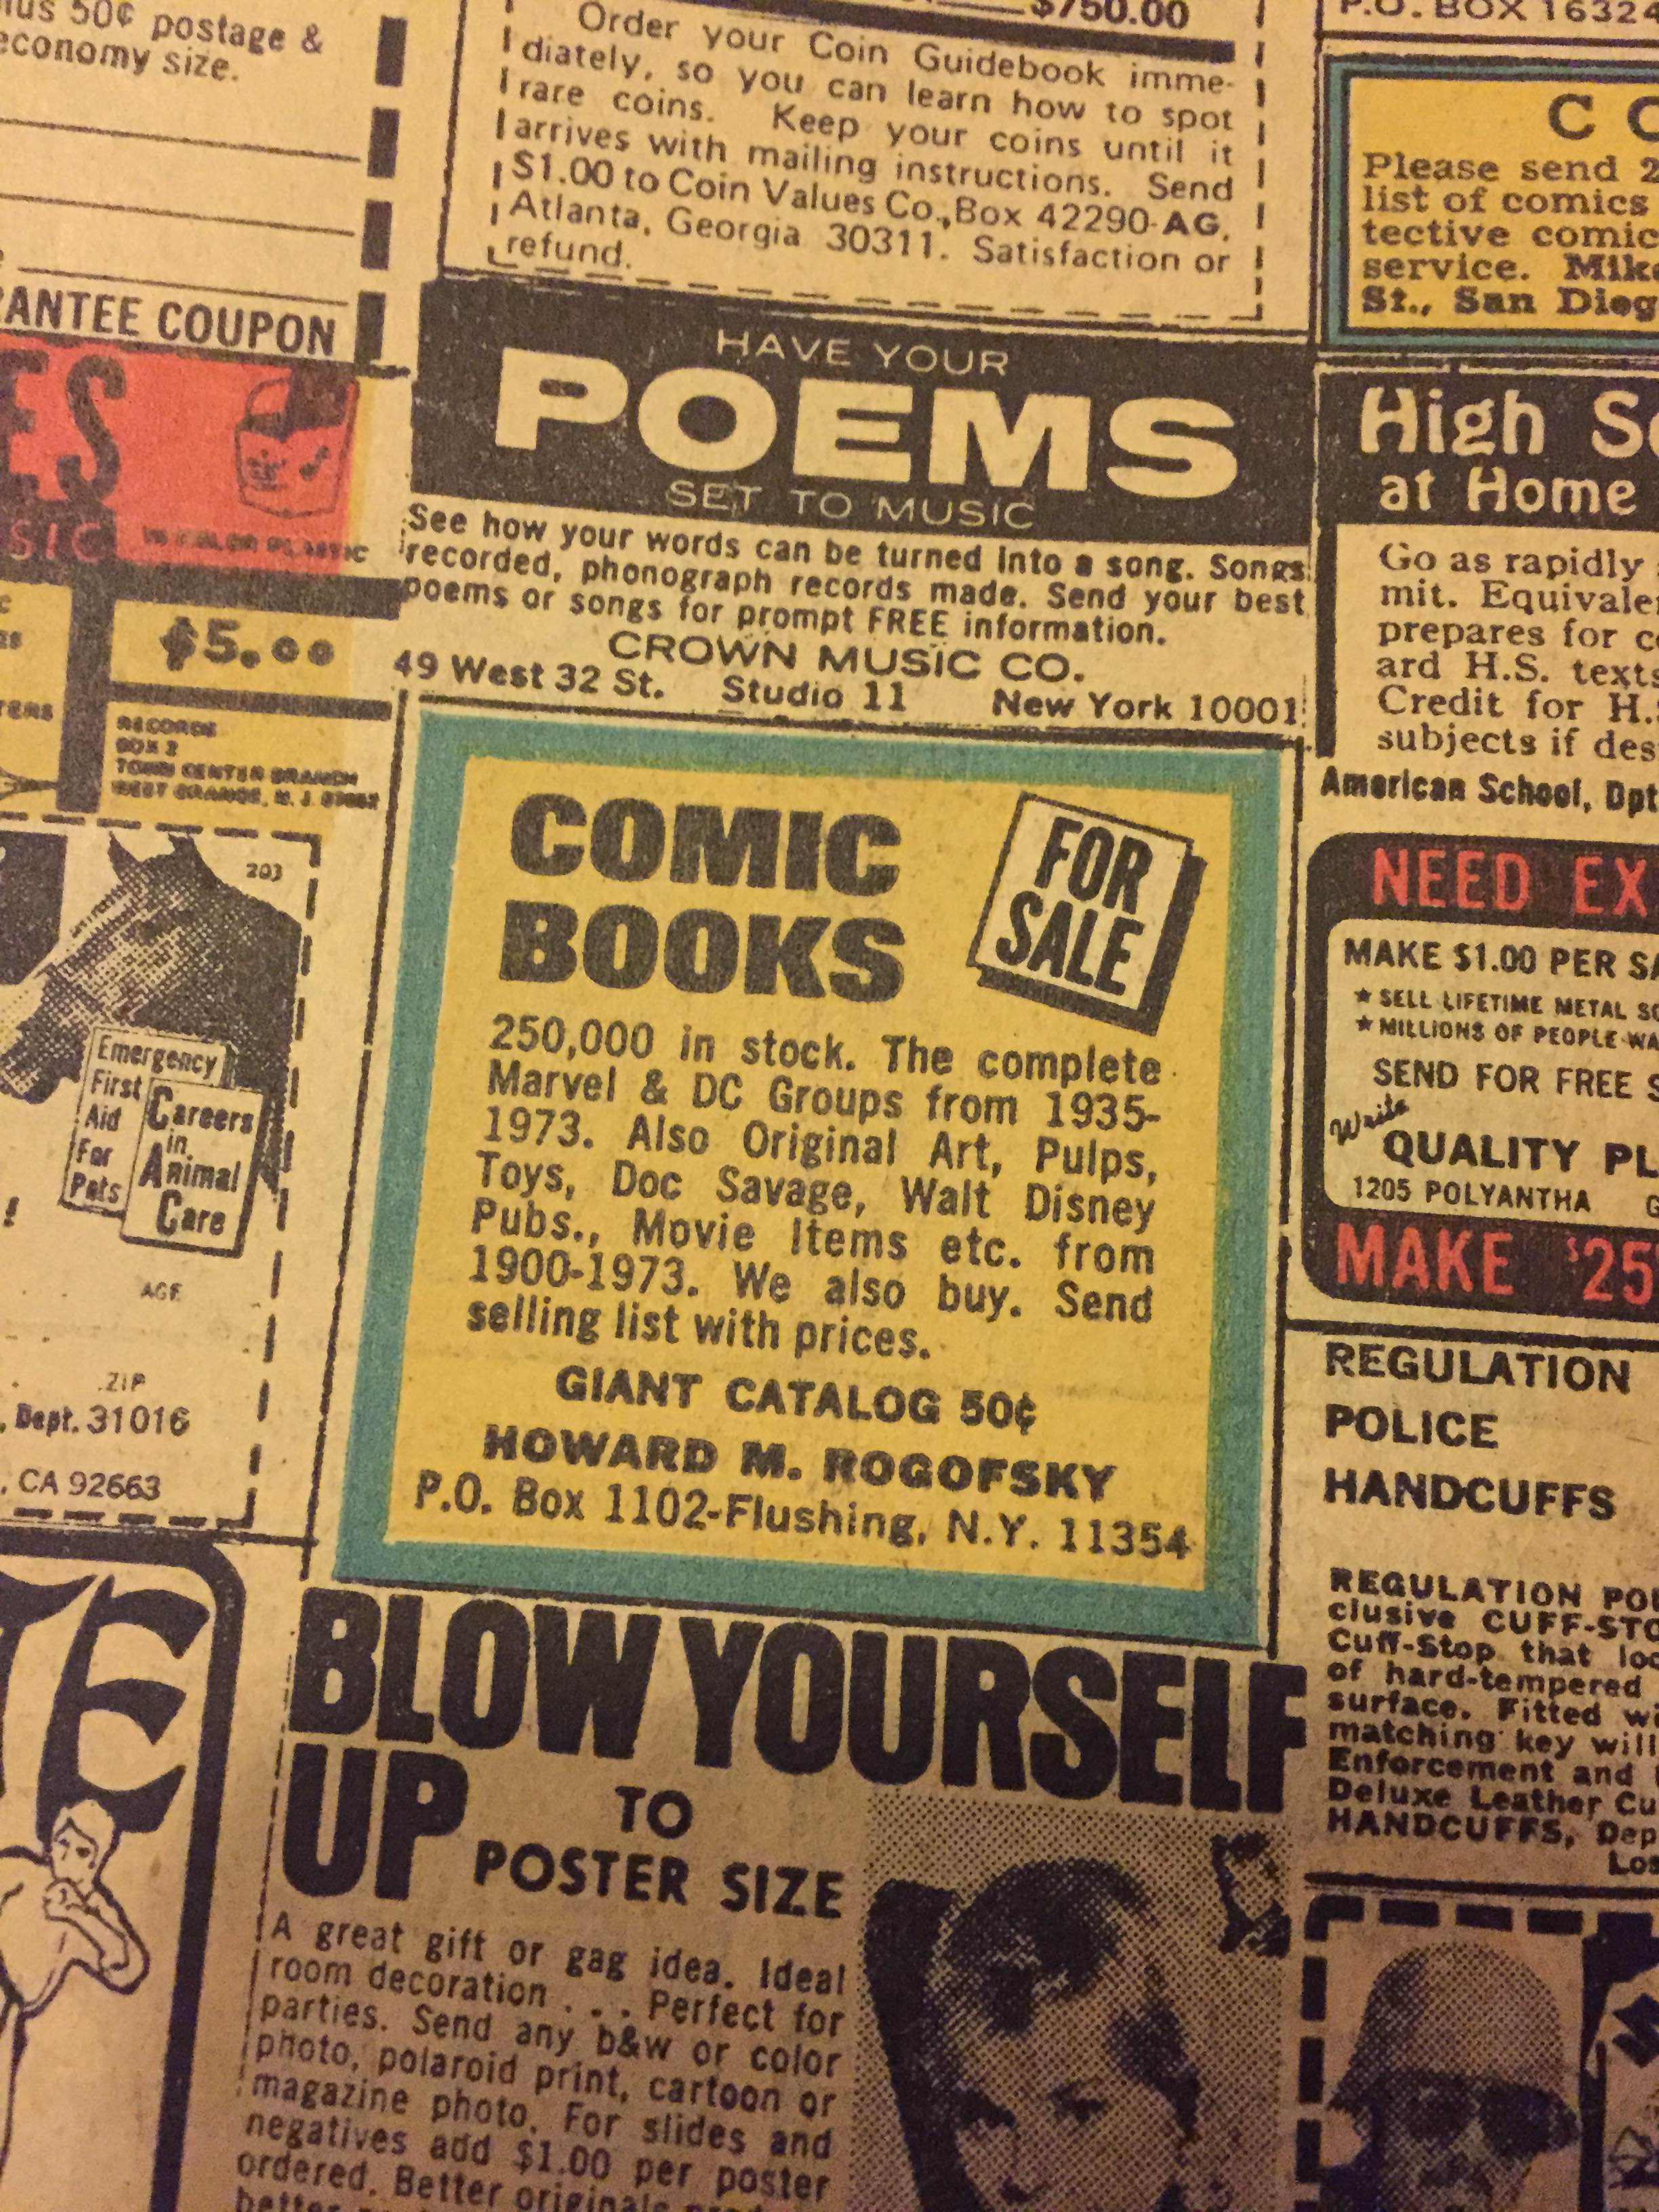 250,000 issues in stock. That means 250,000 books from 1973 or earlier. Can you imagine!